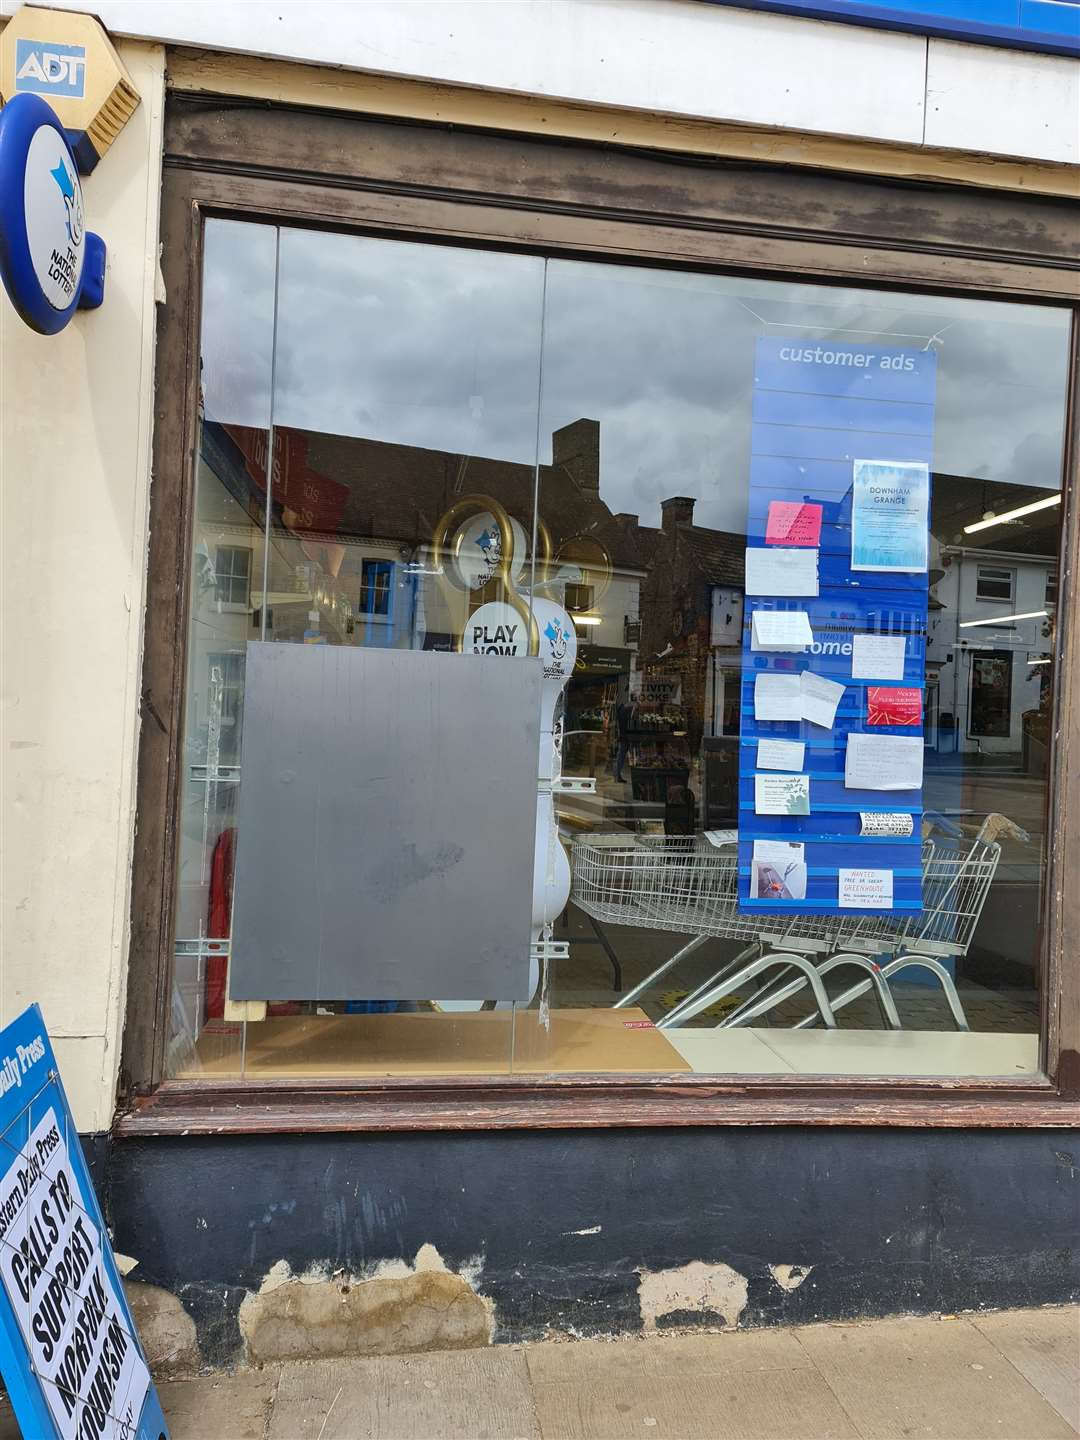 The cash point outside a newsagent has been boarded up, sparking concerns with residents about banking (46830444)